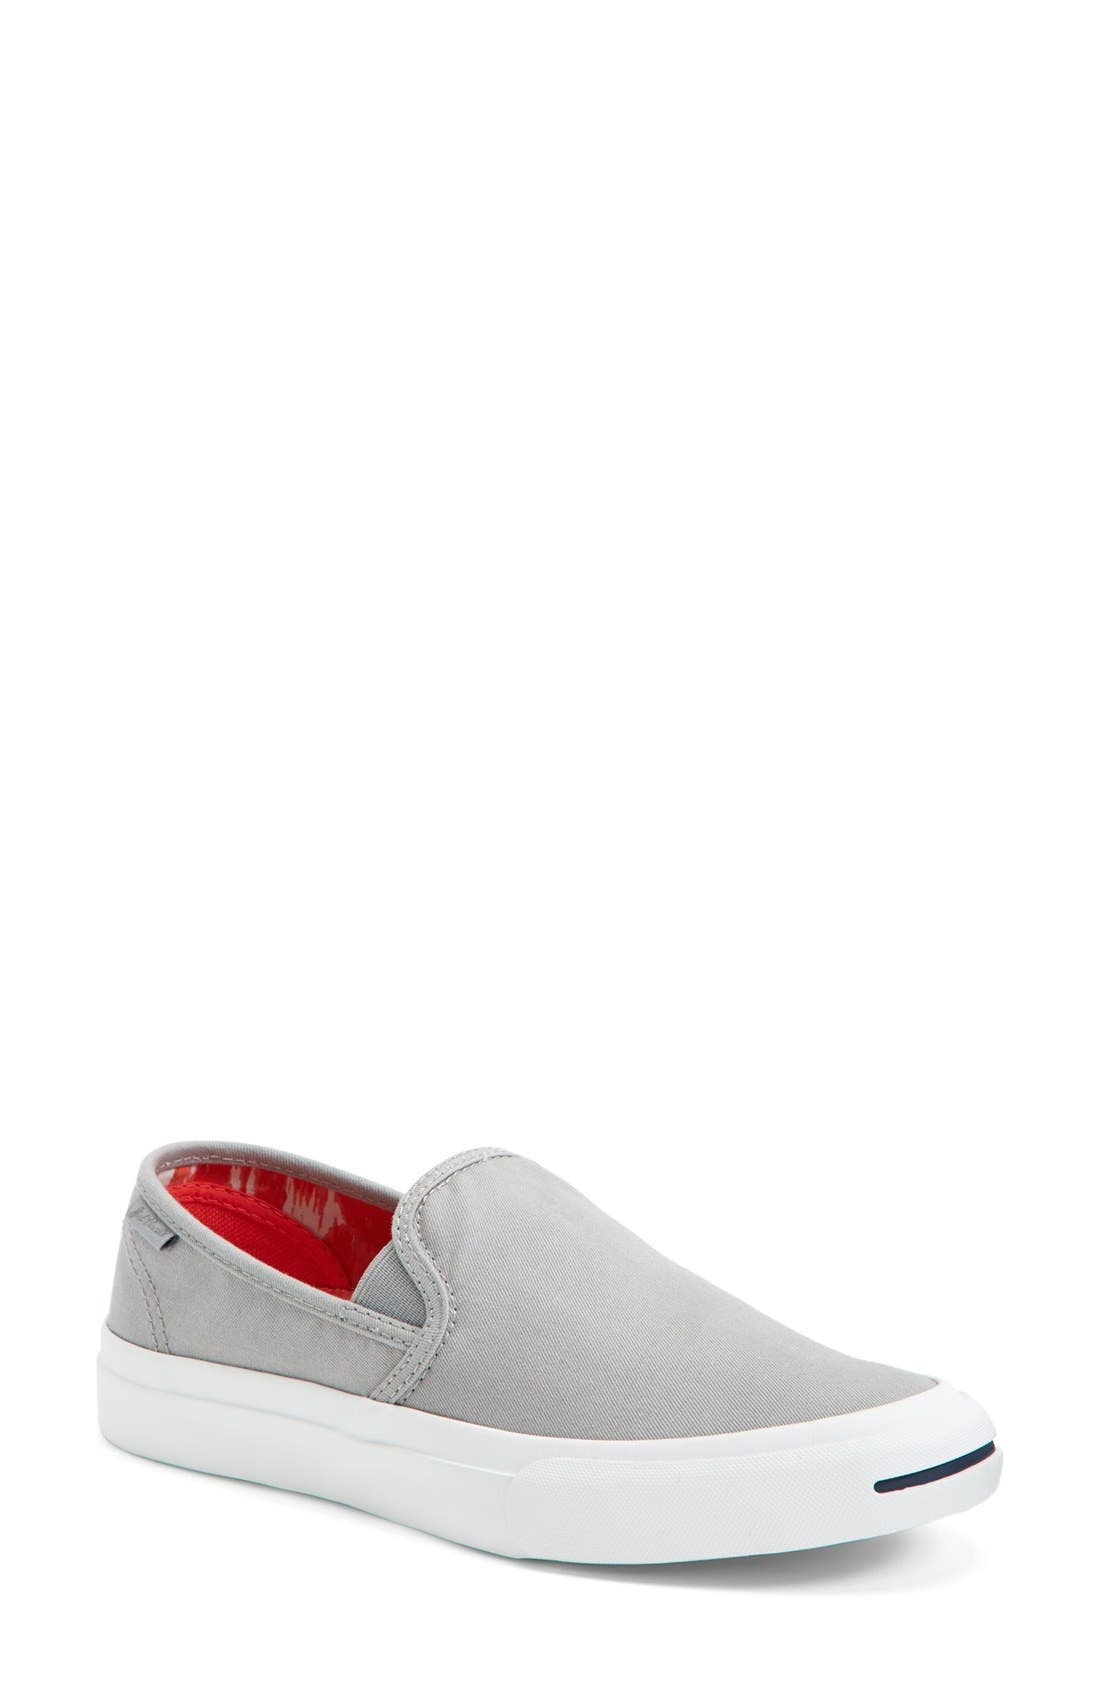 Main Image - Converse 'Jack Purcell' Washed Slip-On Sneaker (Women)